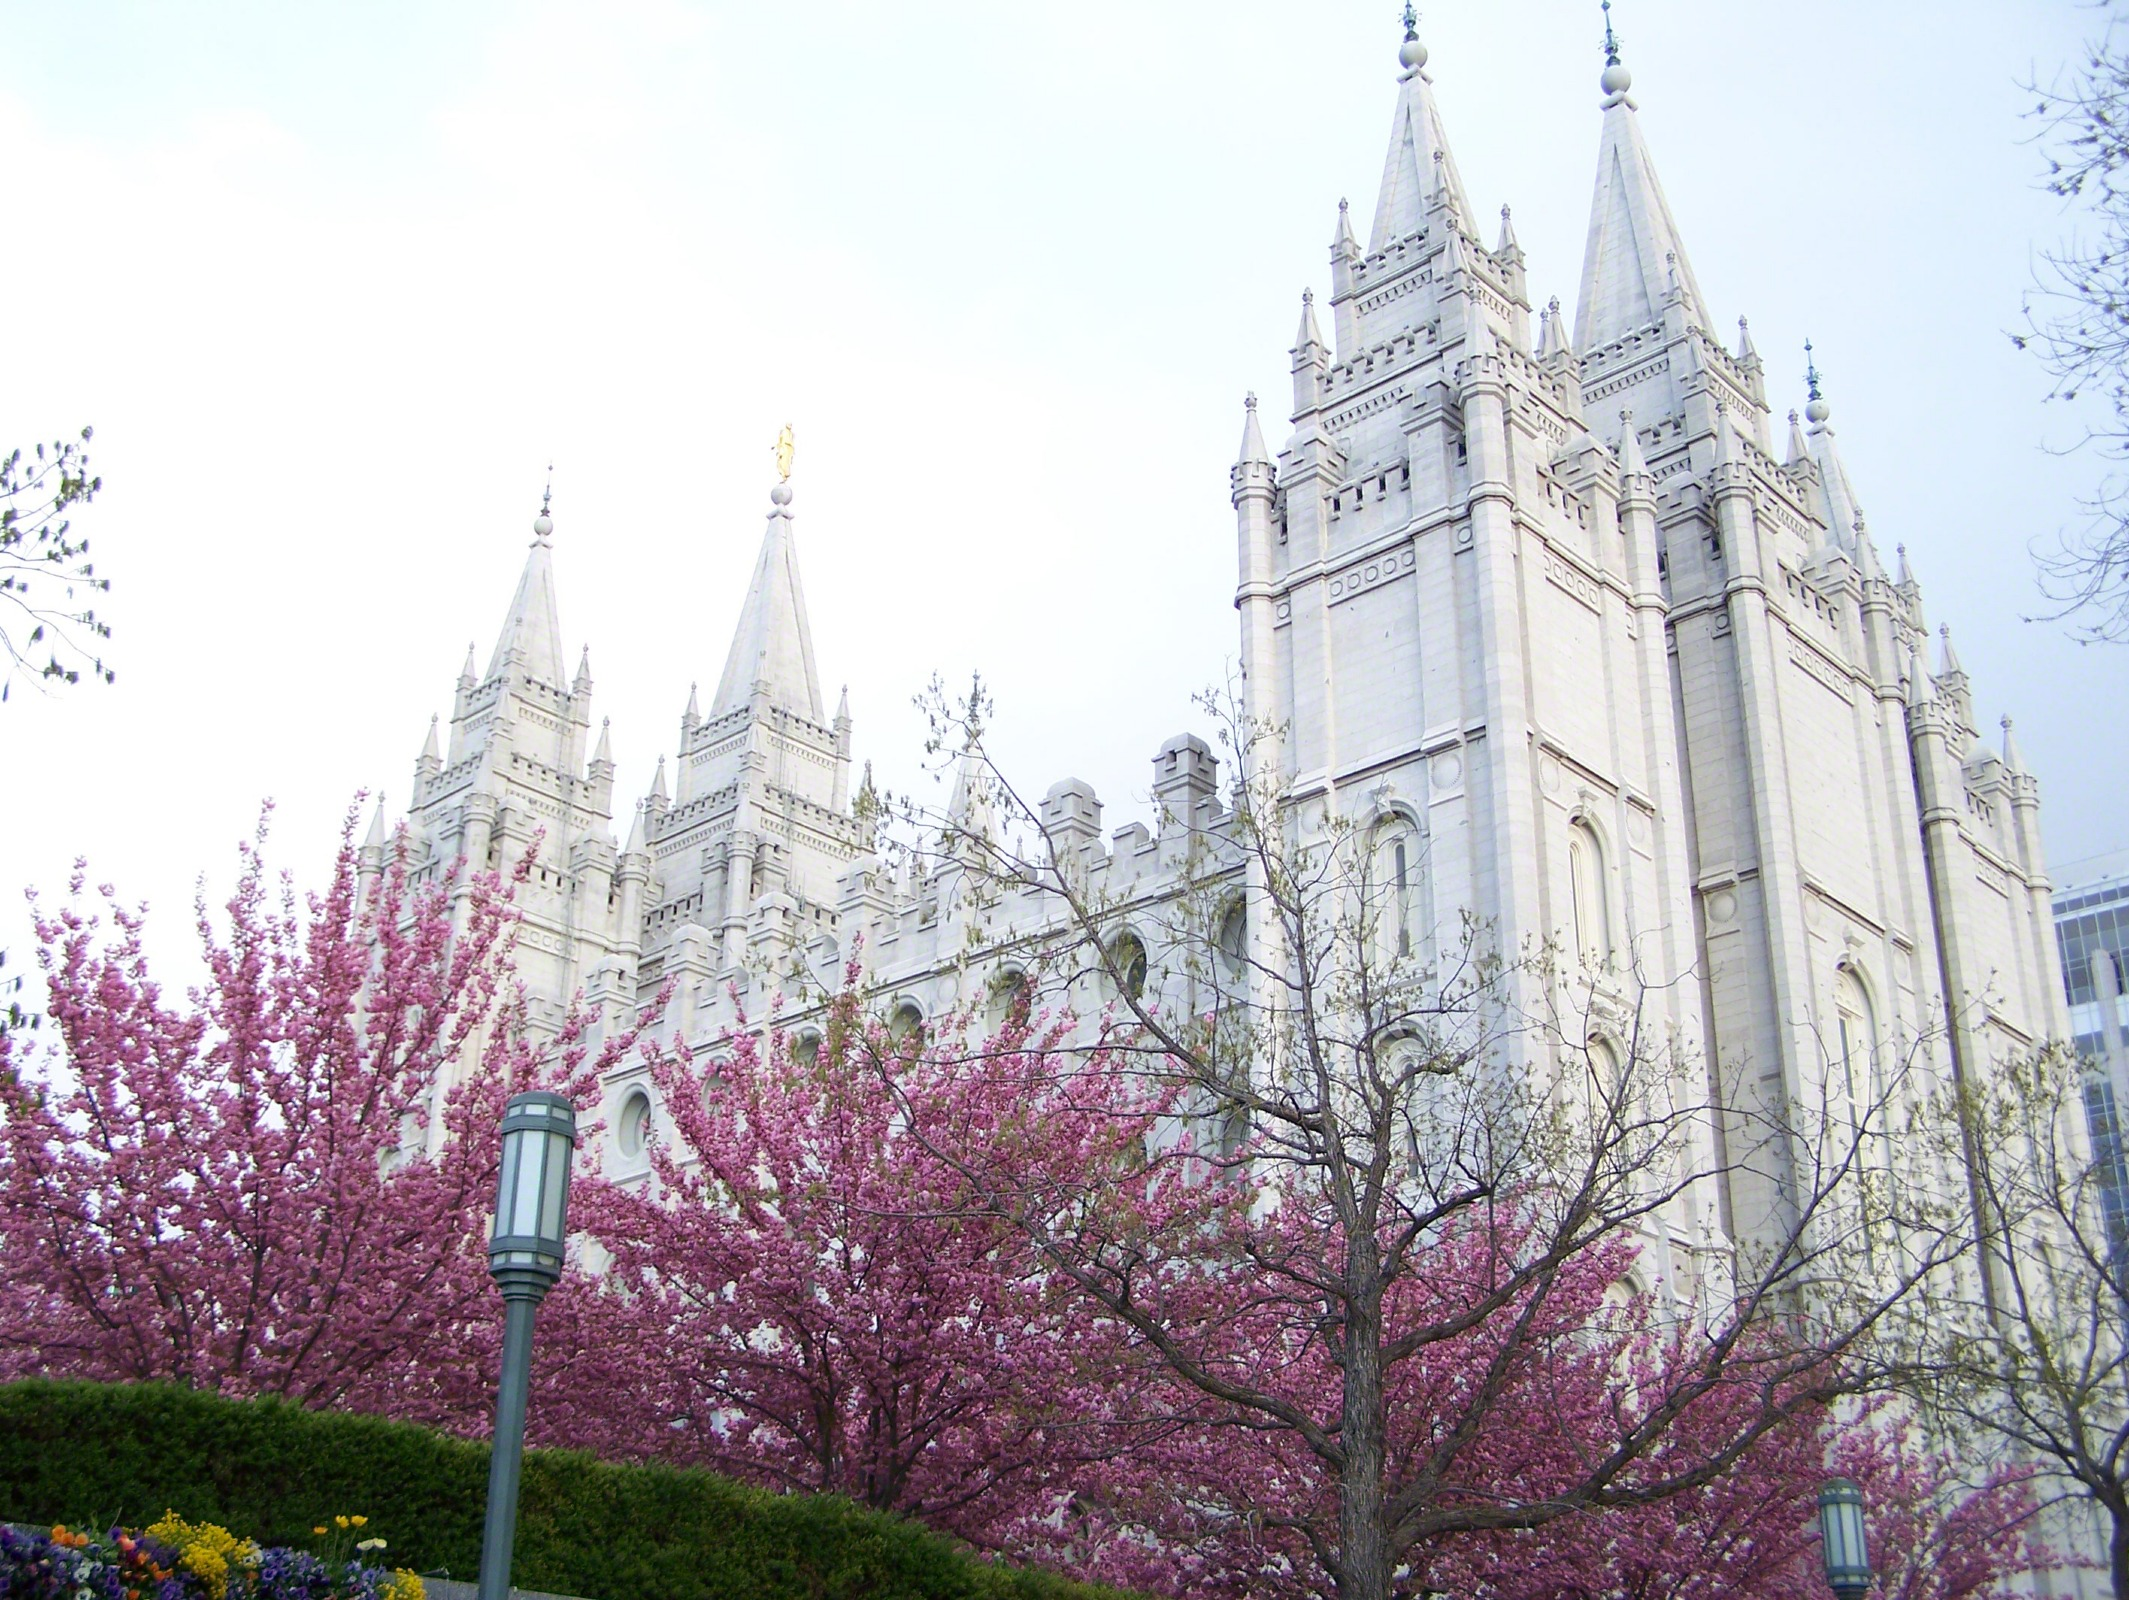 Inside the Mysterious Mormon Temple